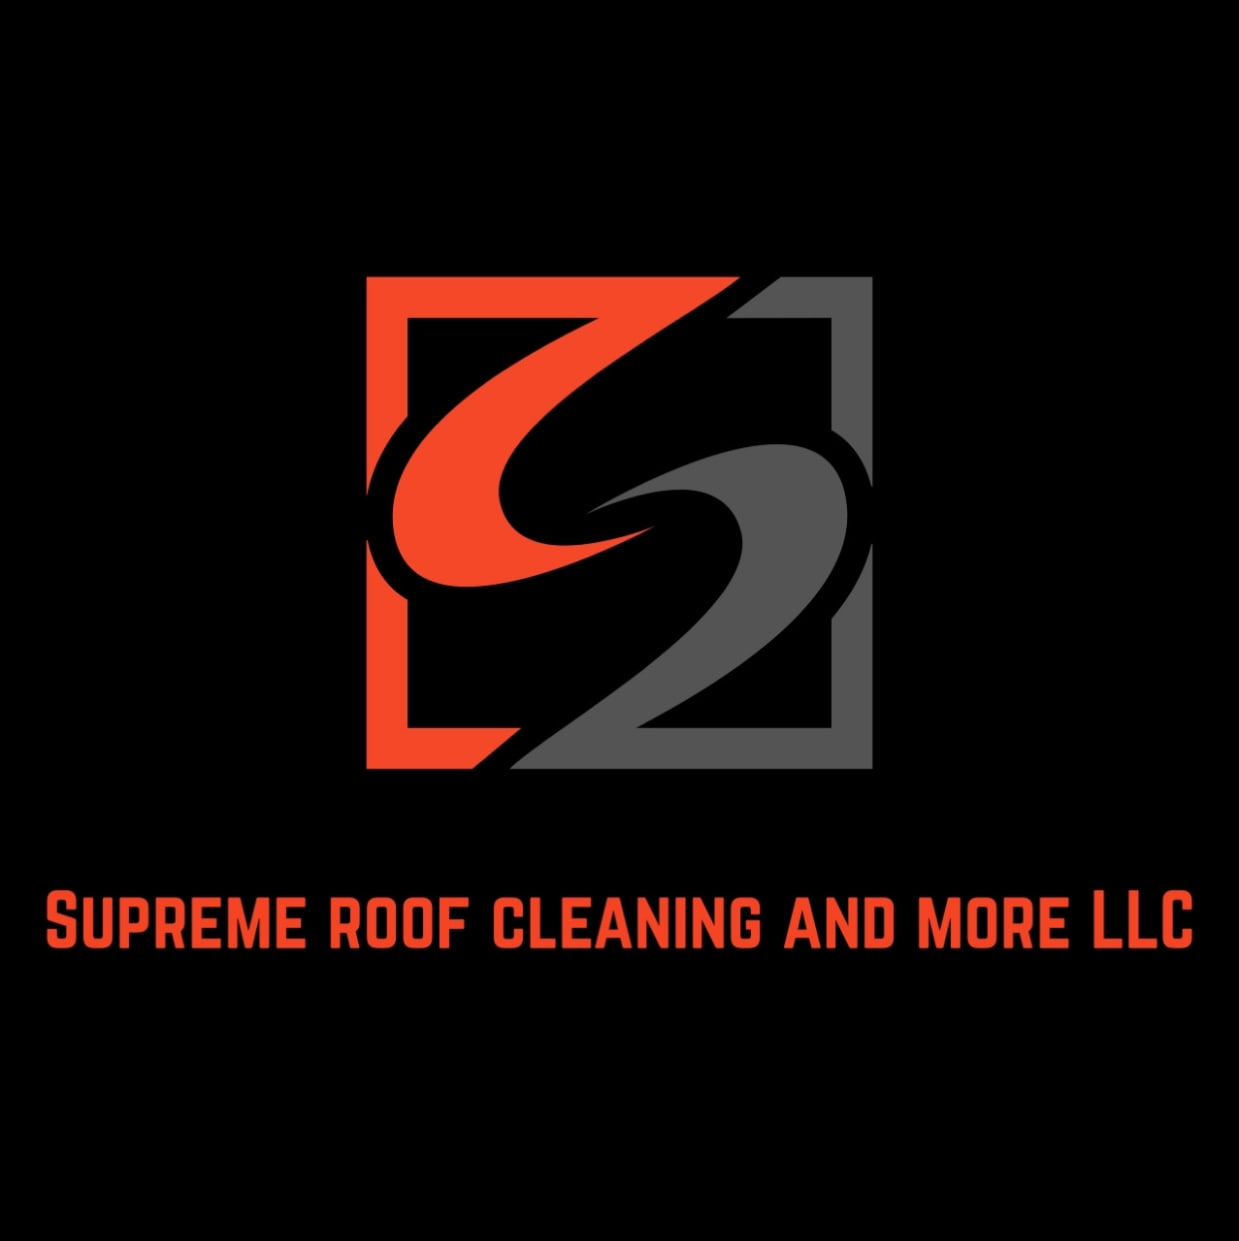 Supreme Roof Cleaning And More